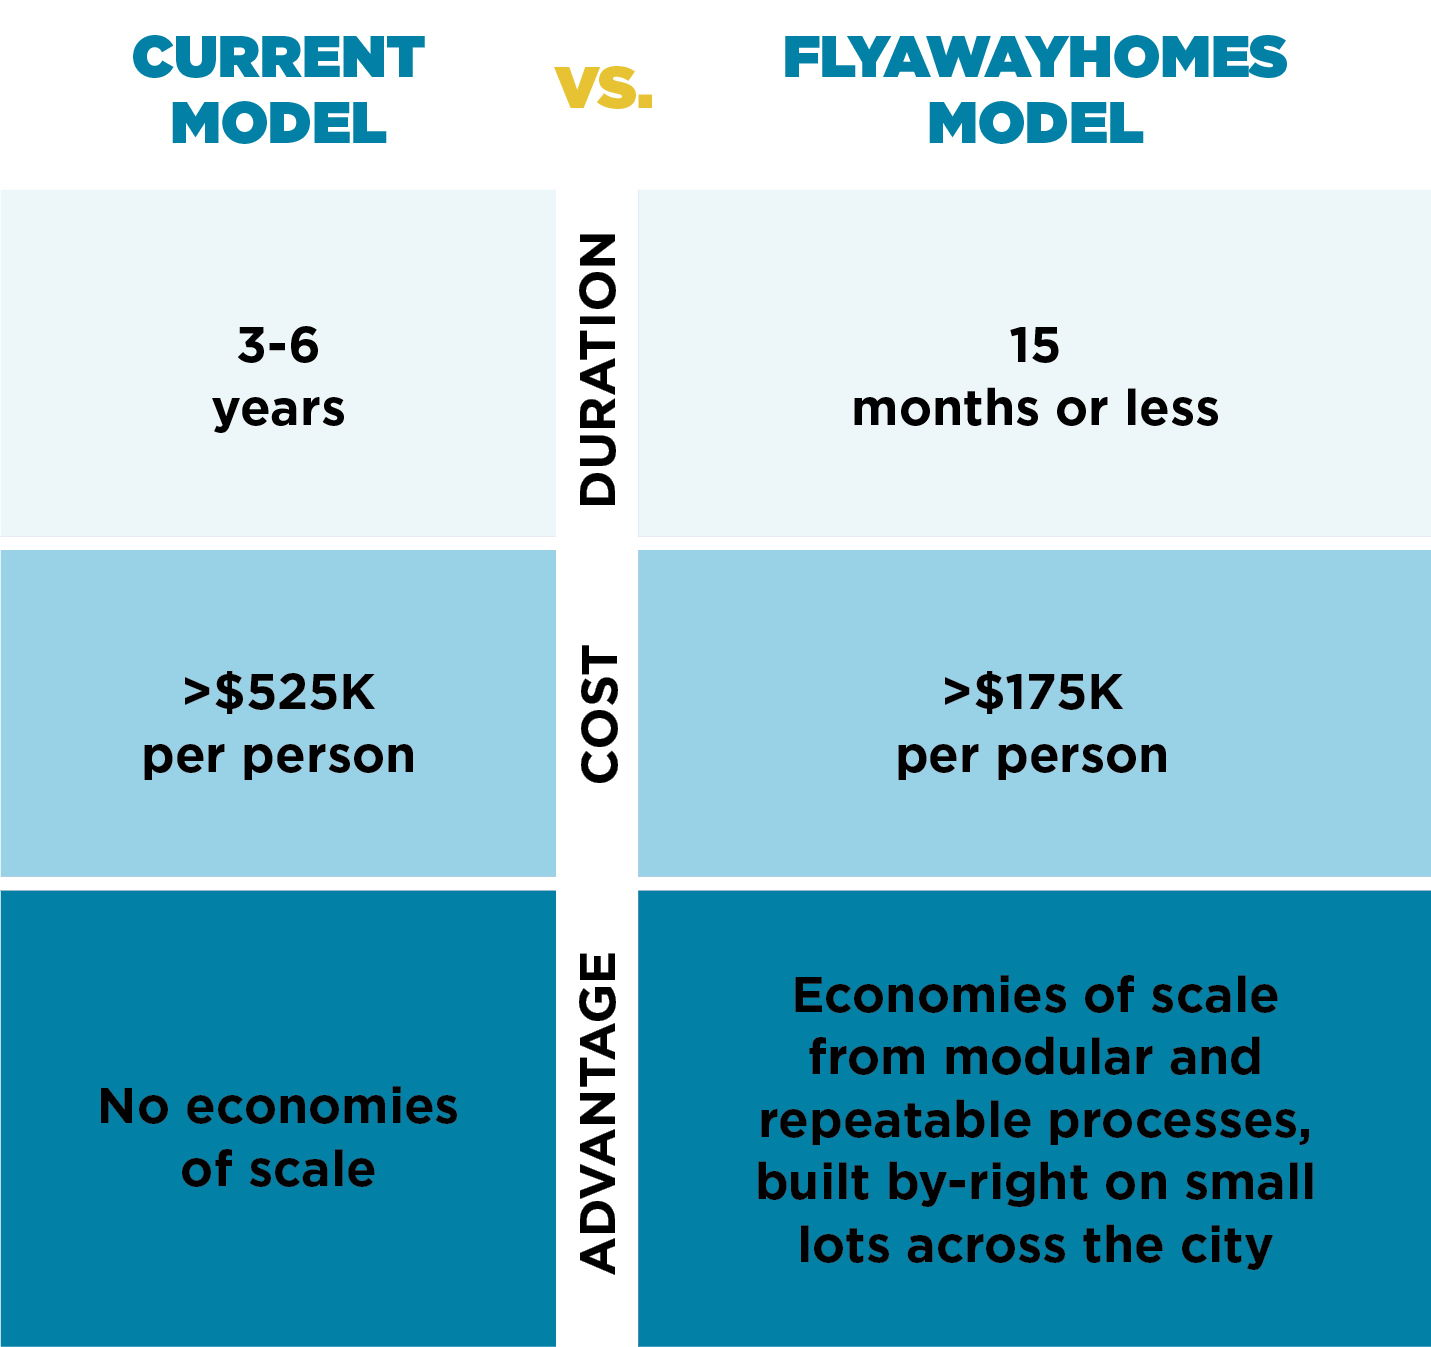 Current vs Flyaway Model